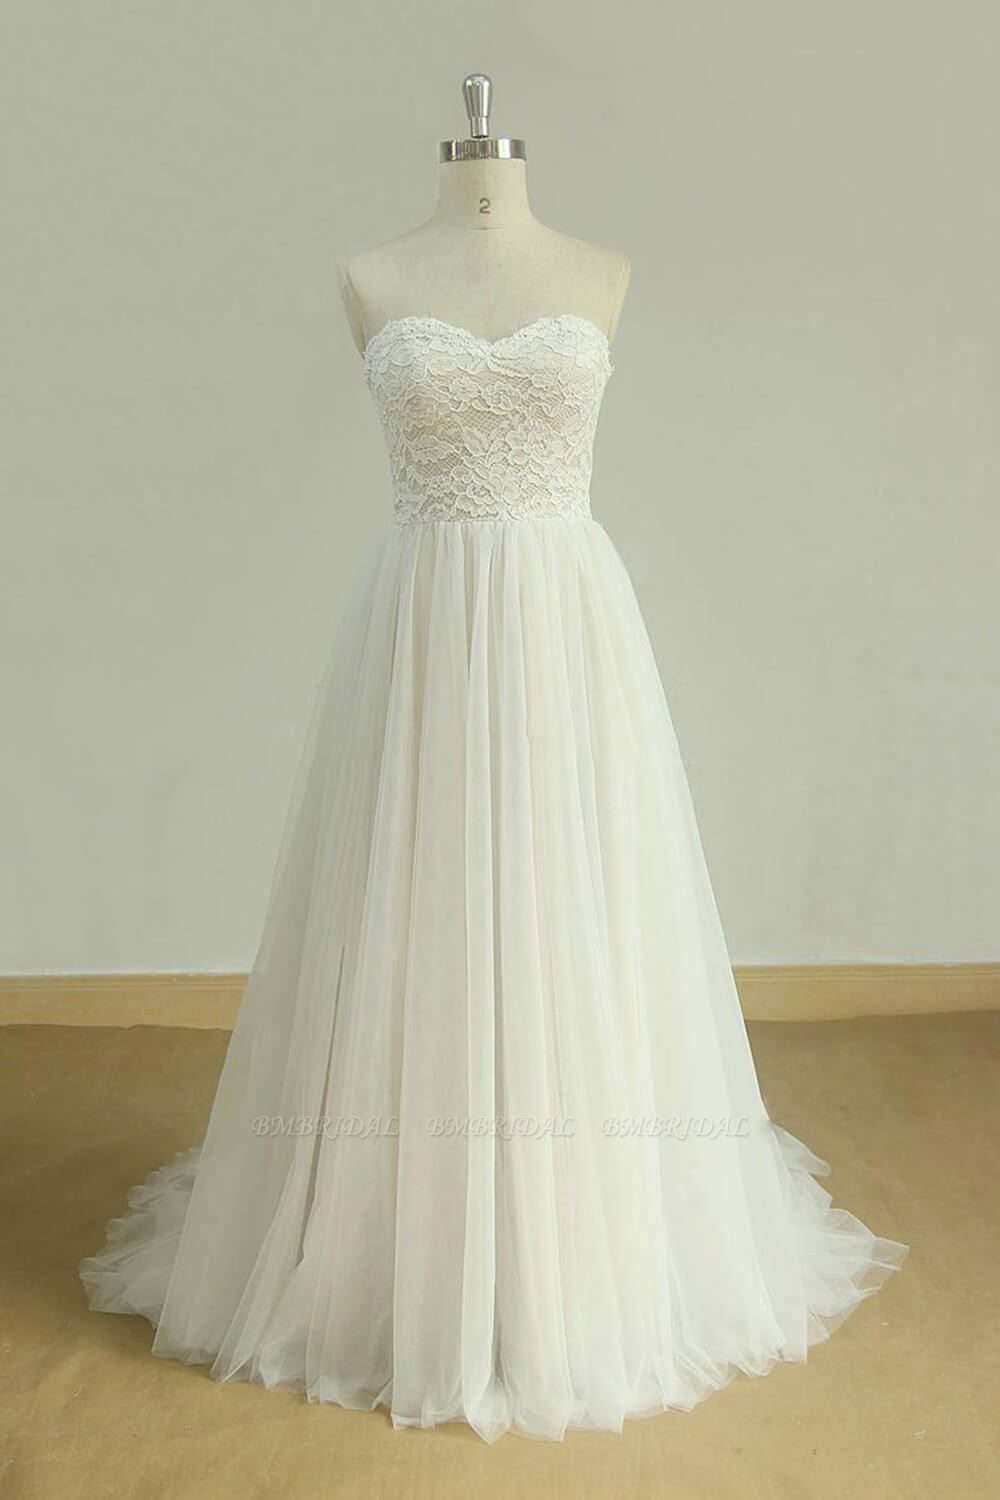 Chic Sweetheart Lace Wedding Dress White Tulle Ruffles Bridal Gowns On Sale